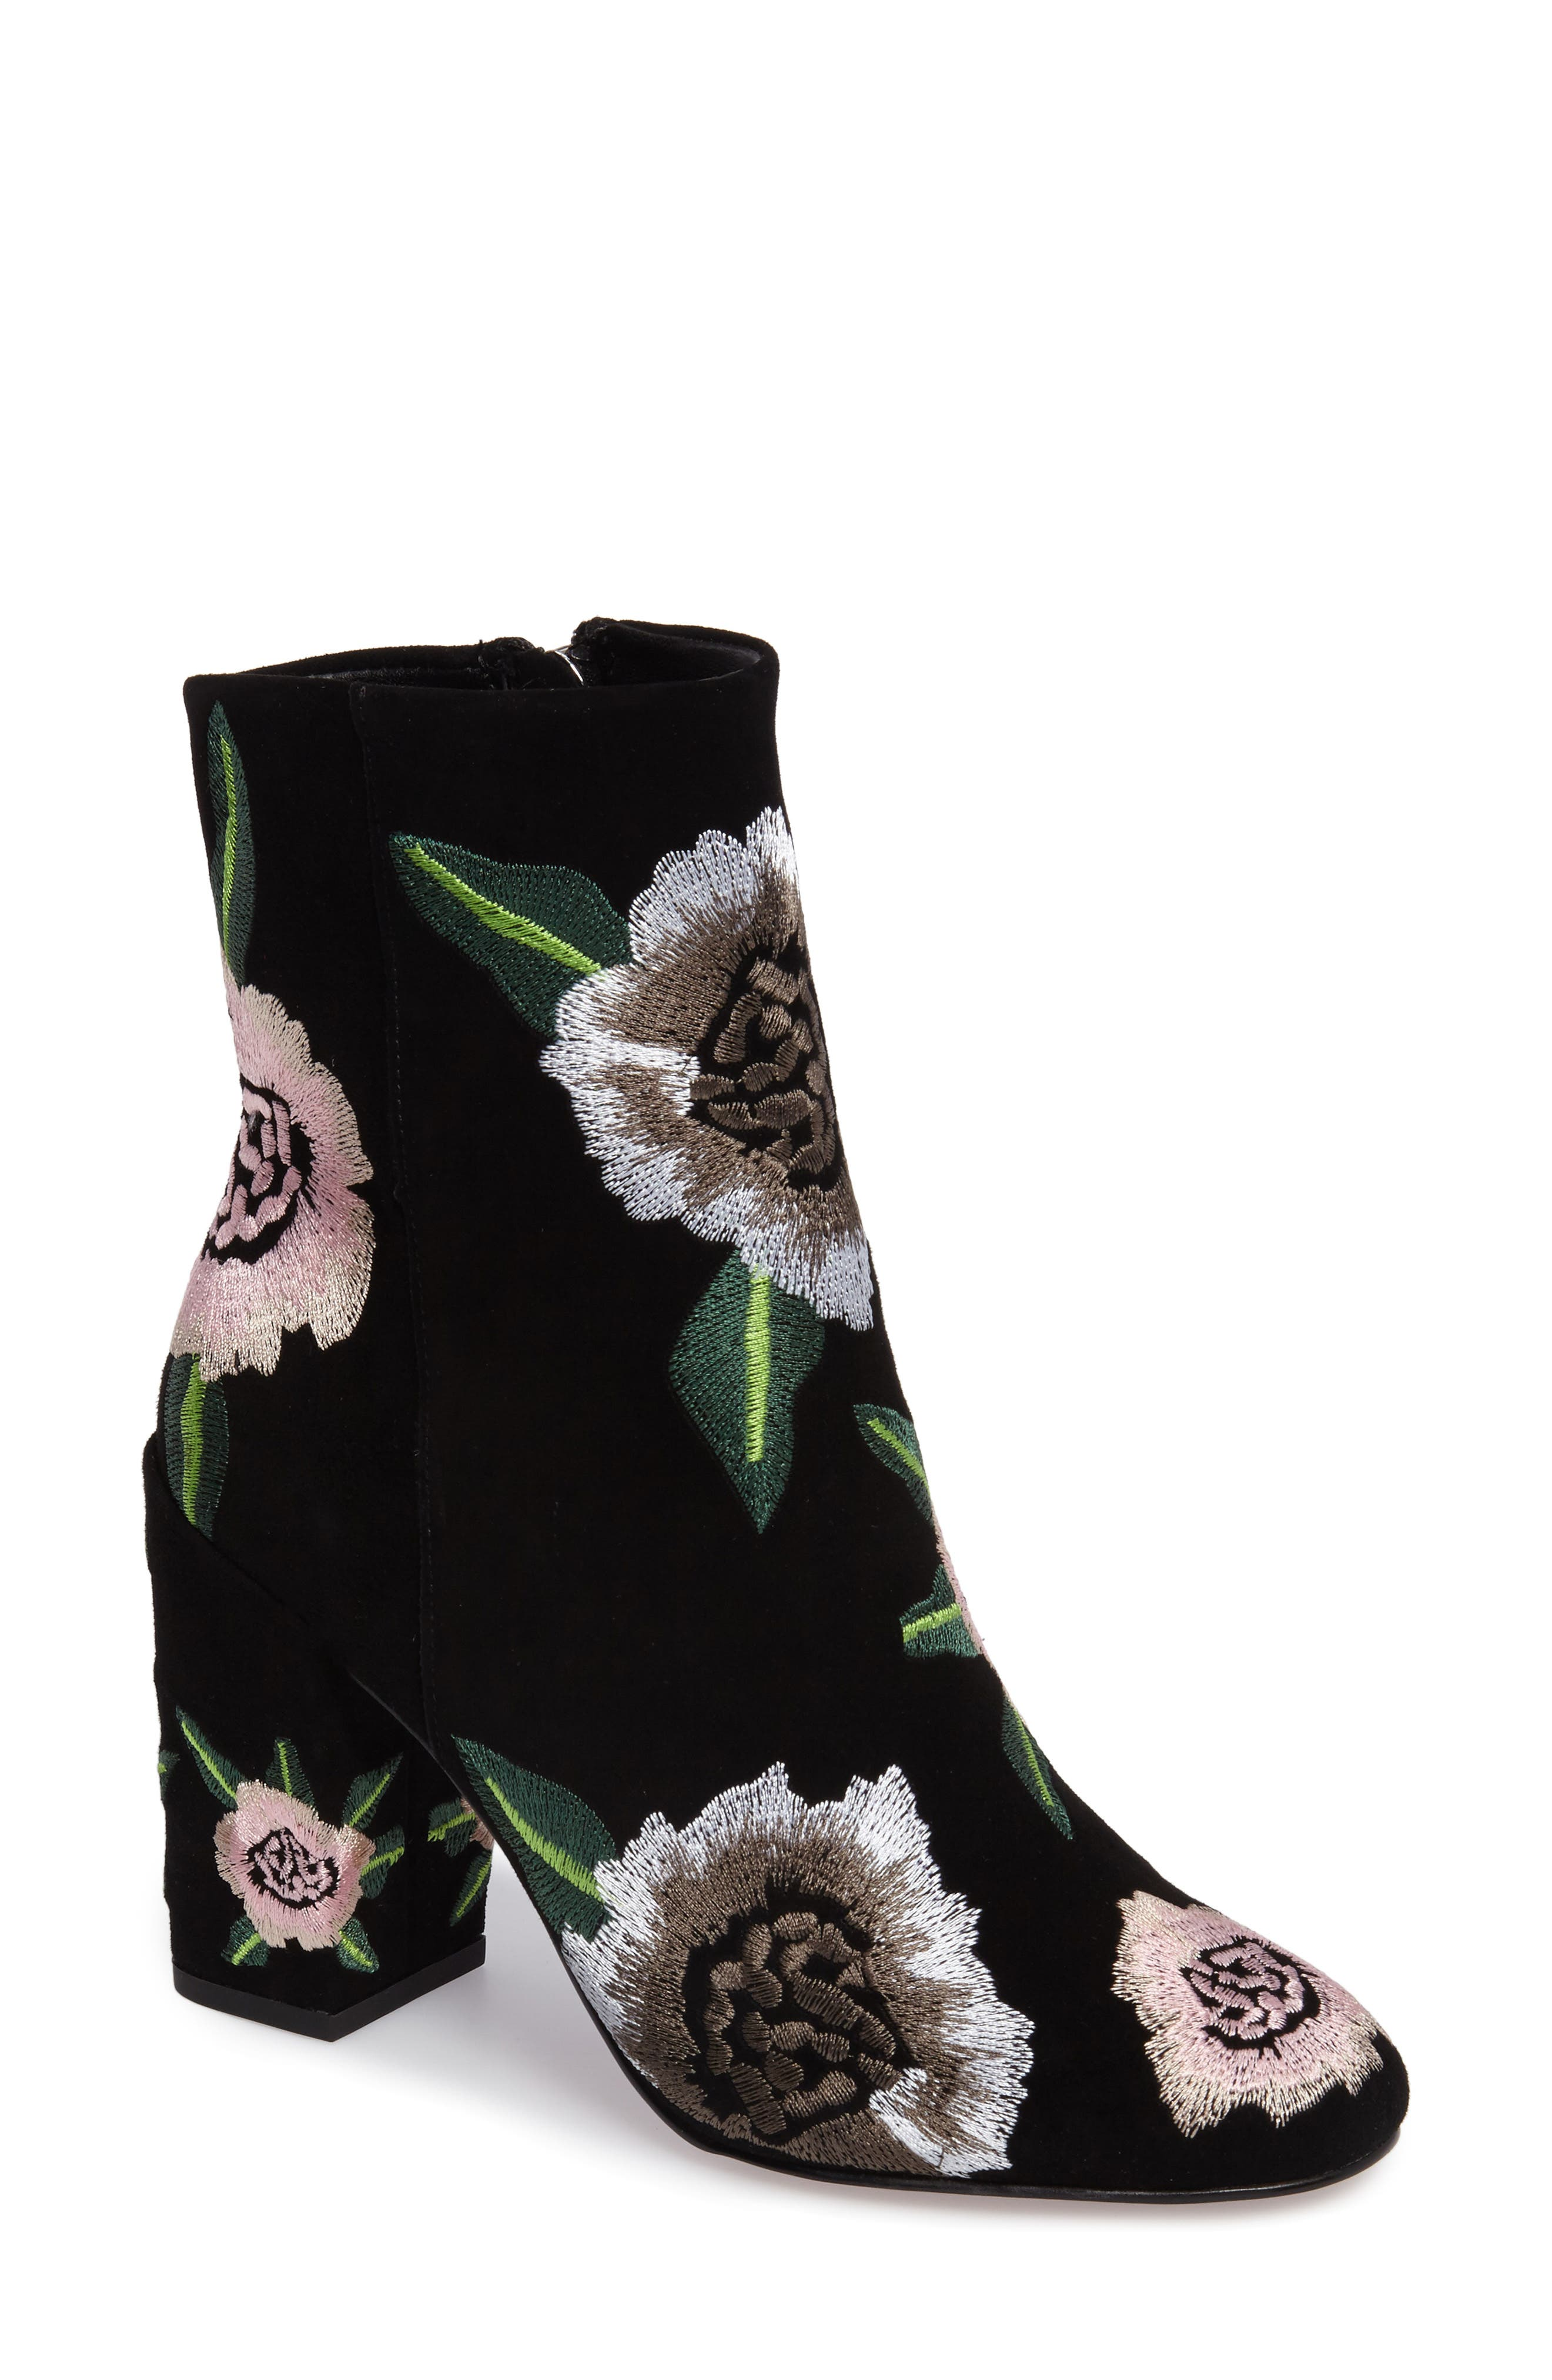 Alternate Image 1 Selected - Rebecca Minkoff Bryce Flower Embroidered Bootie (Women)